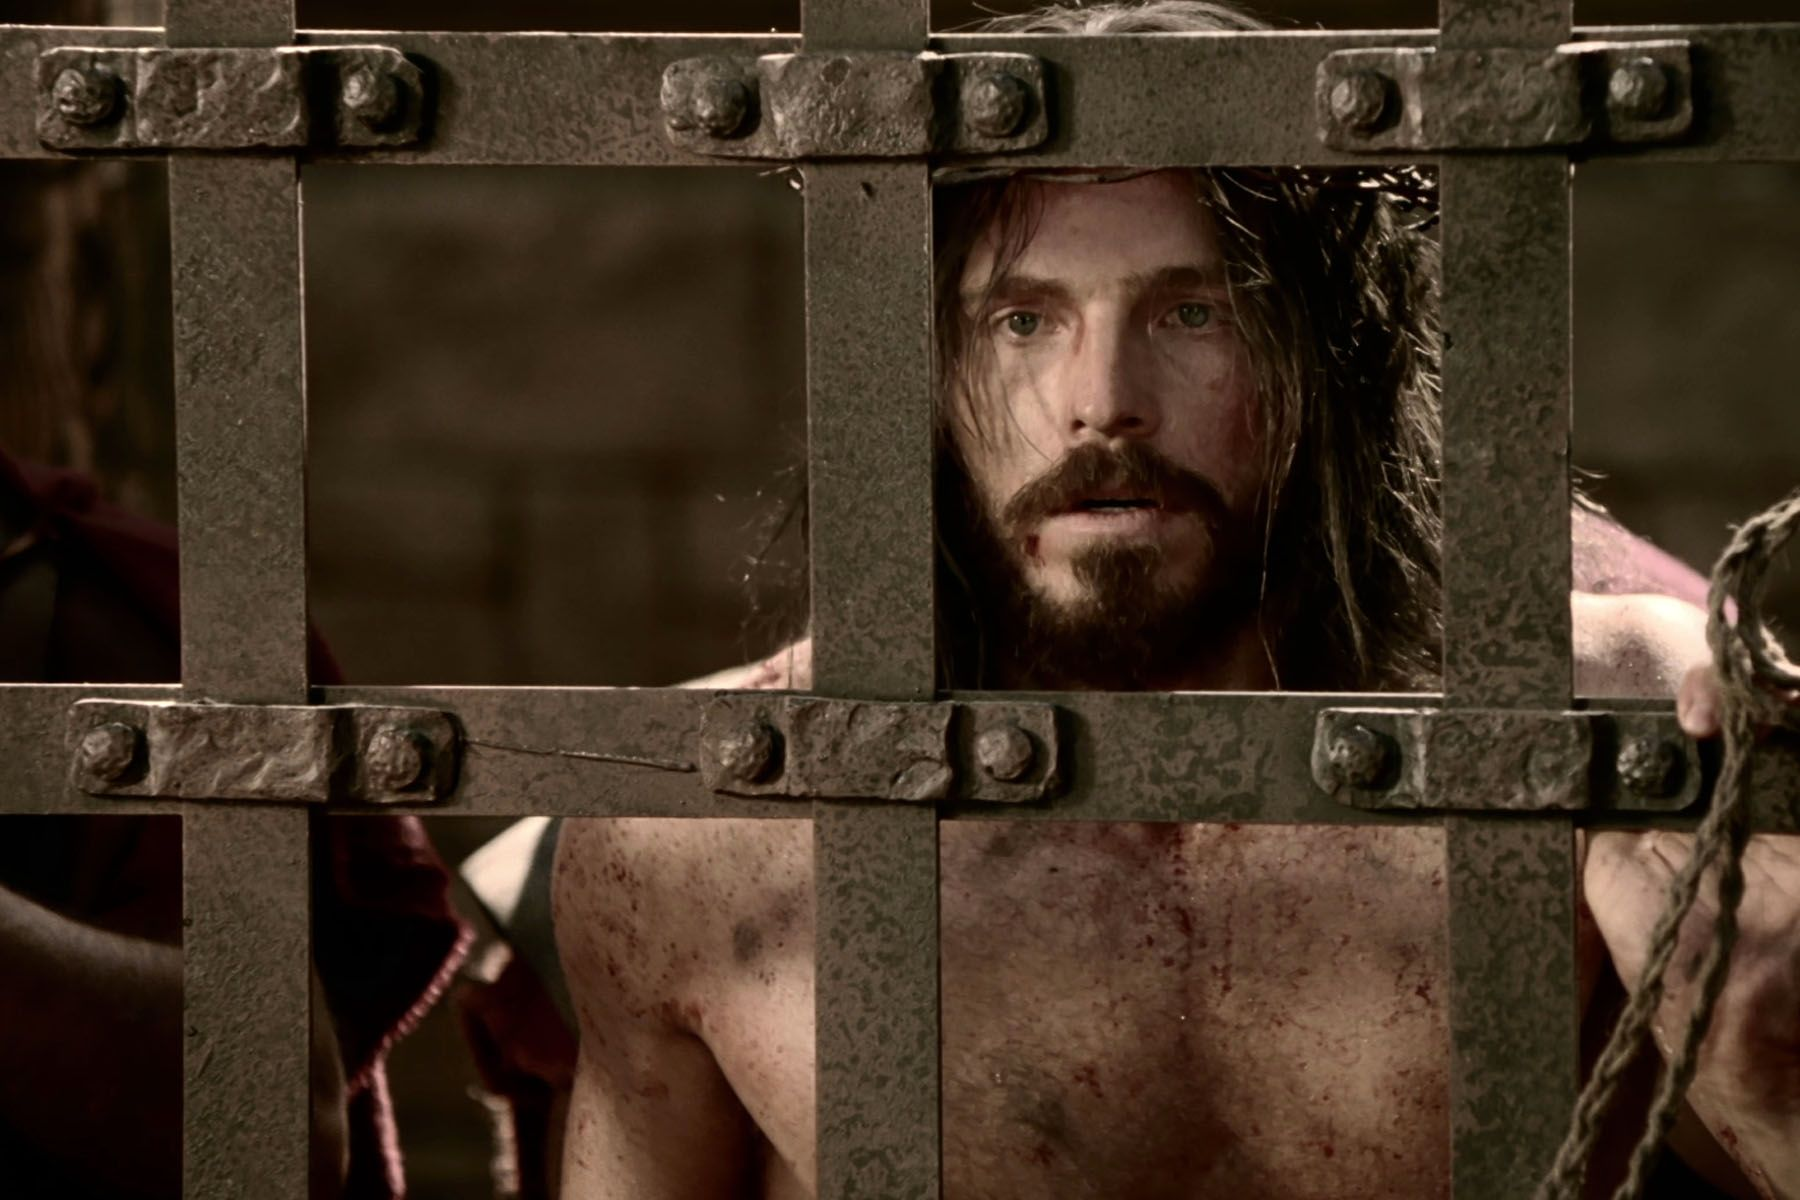 Jesus is scourged by soldiers while in prison.